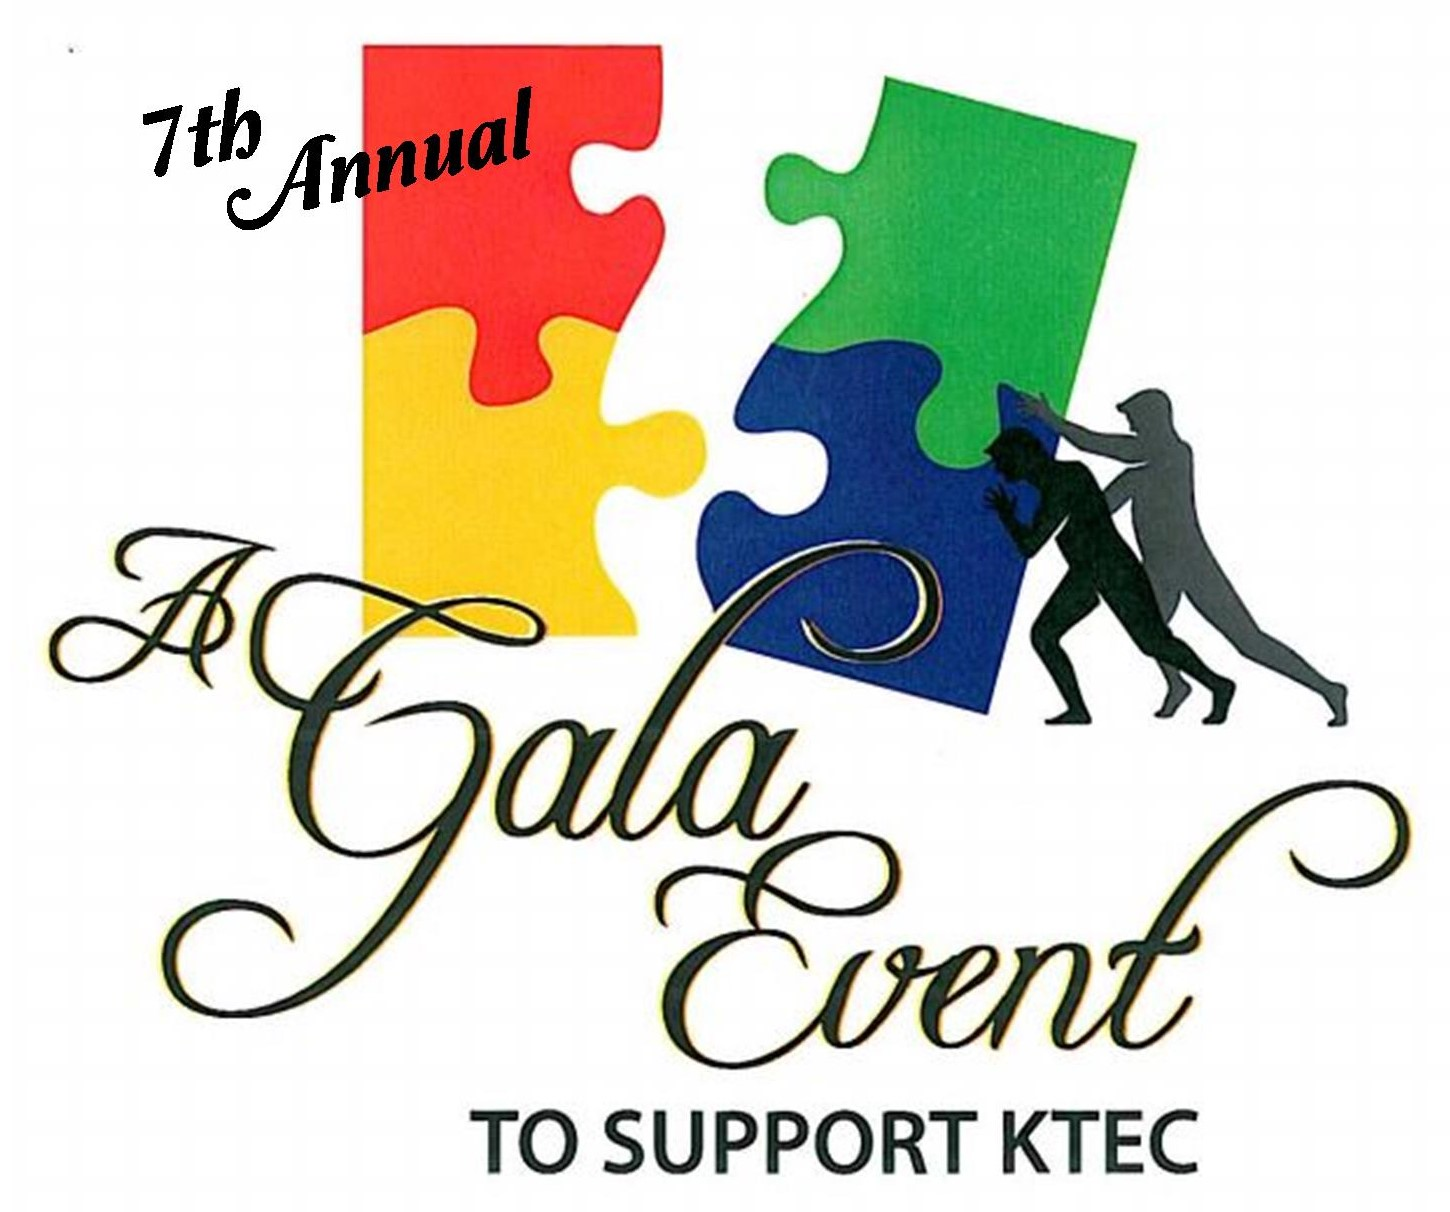 7th annual gala event to support KTEC